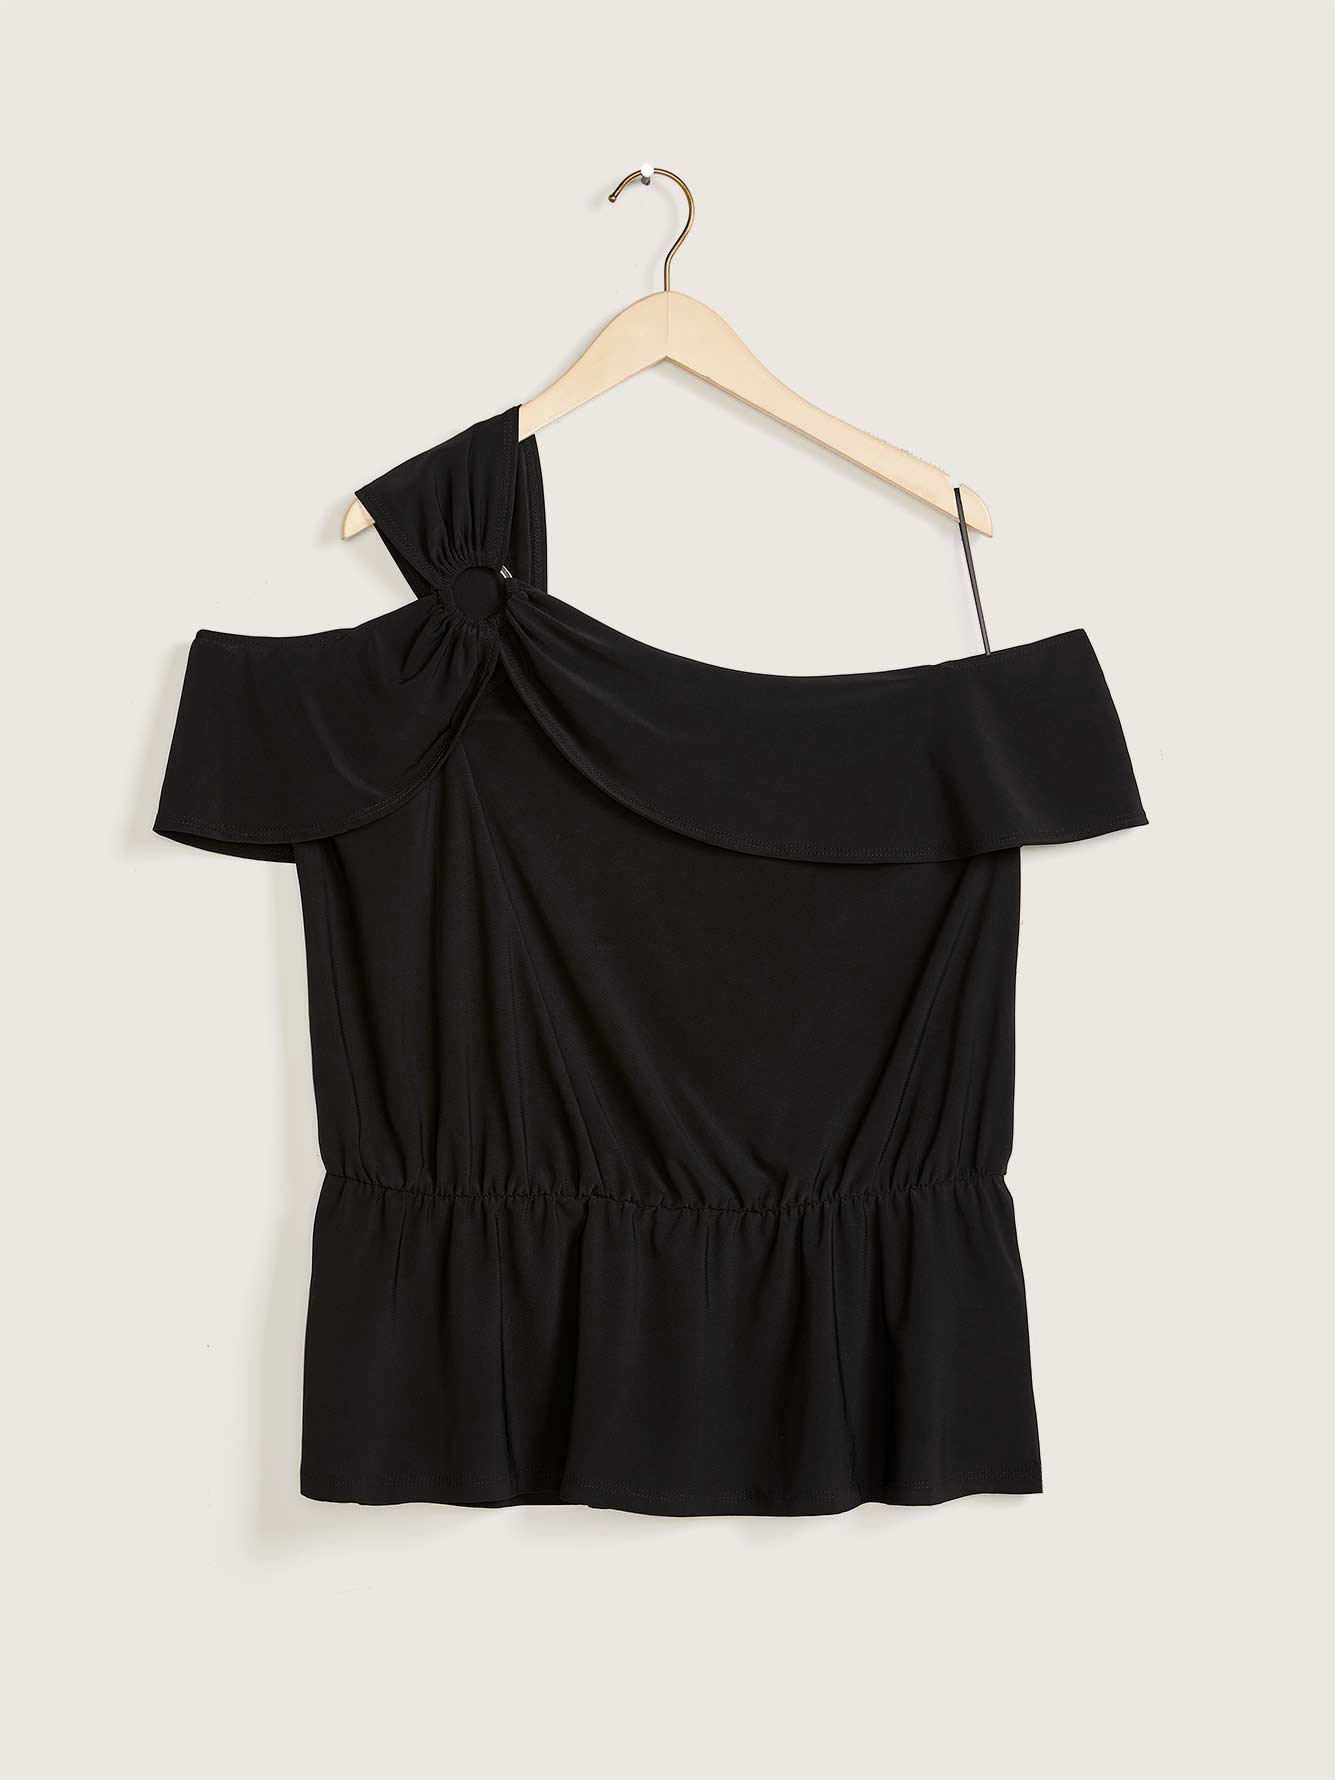 Asymmetrical Off-the-Shoulder Top - Love & Legend